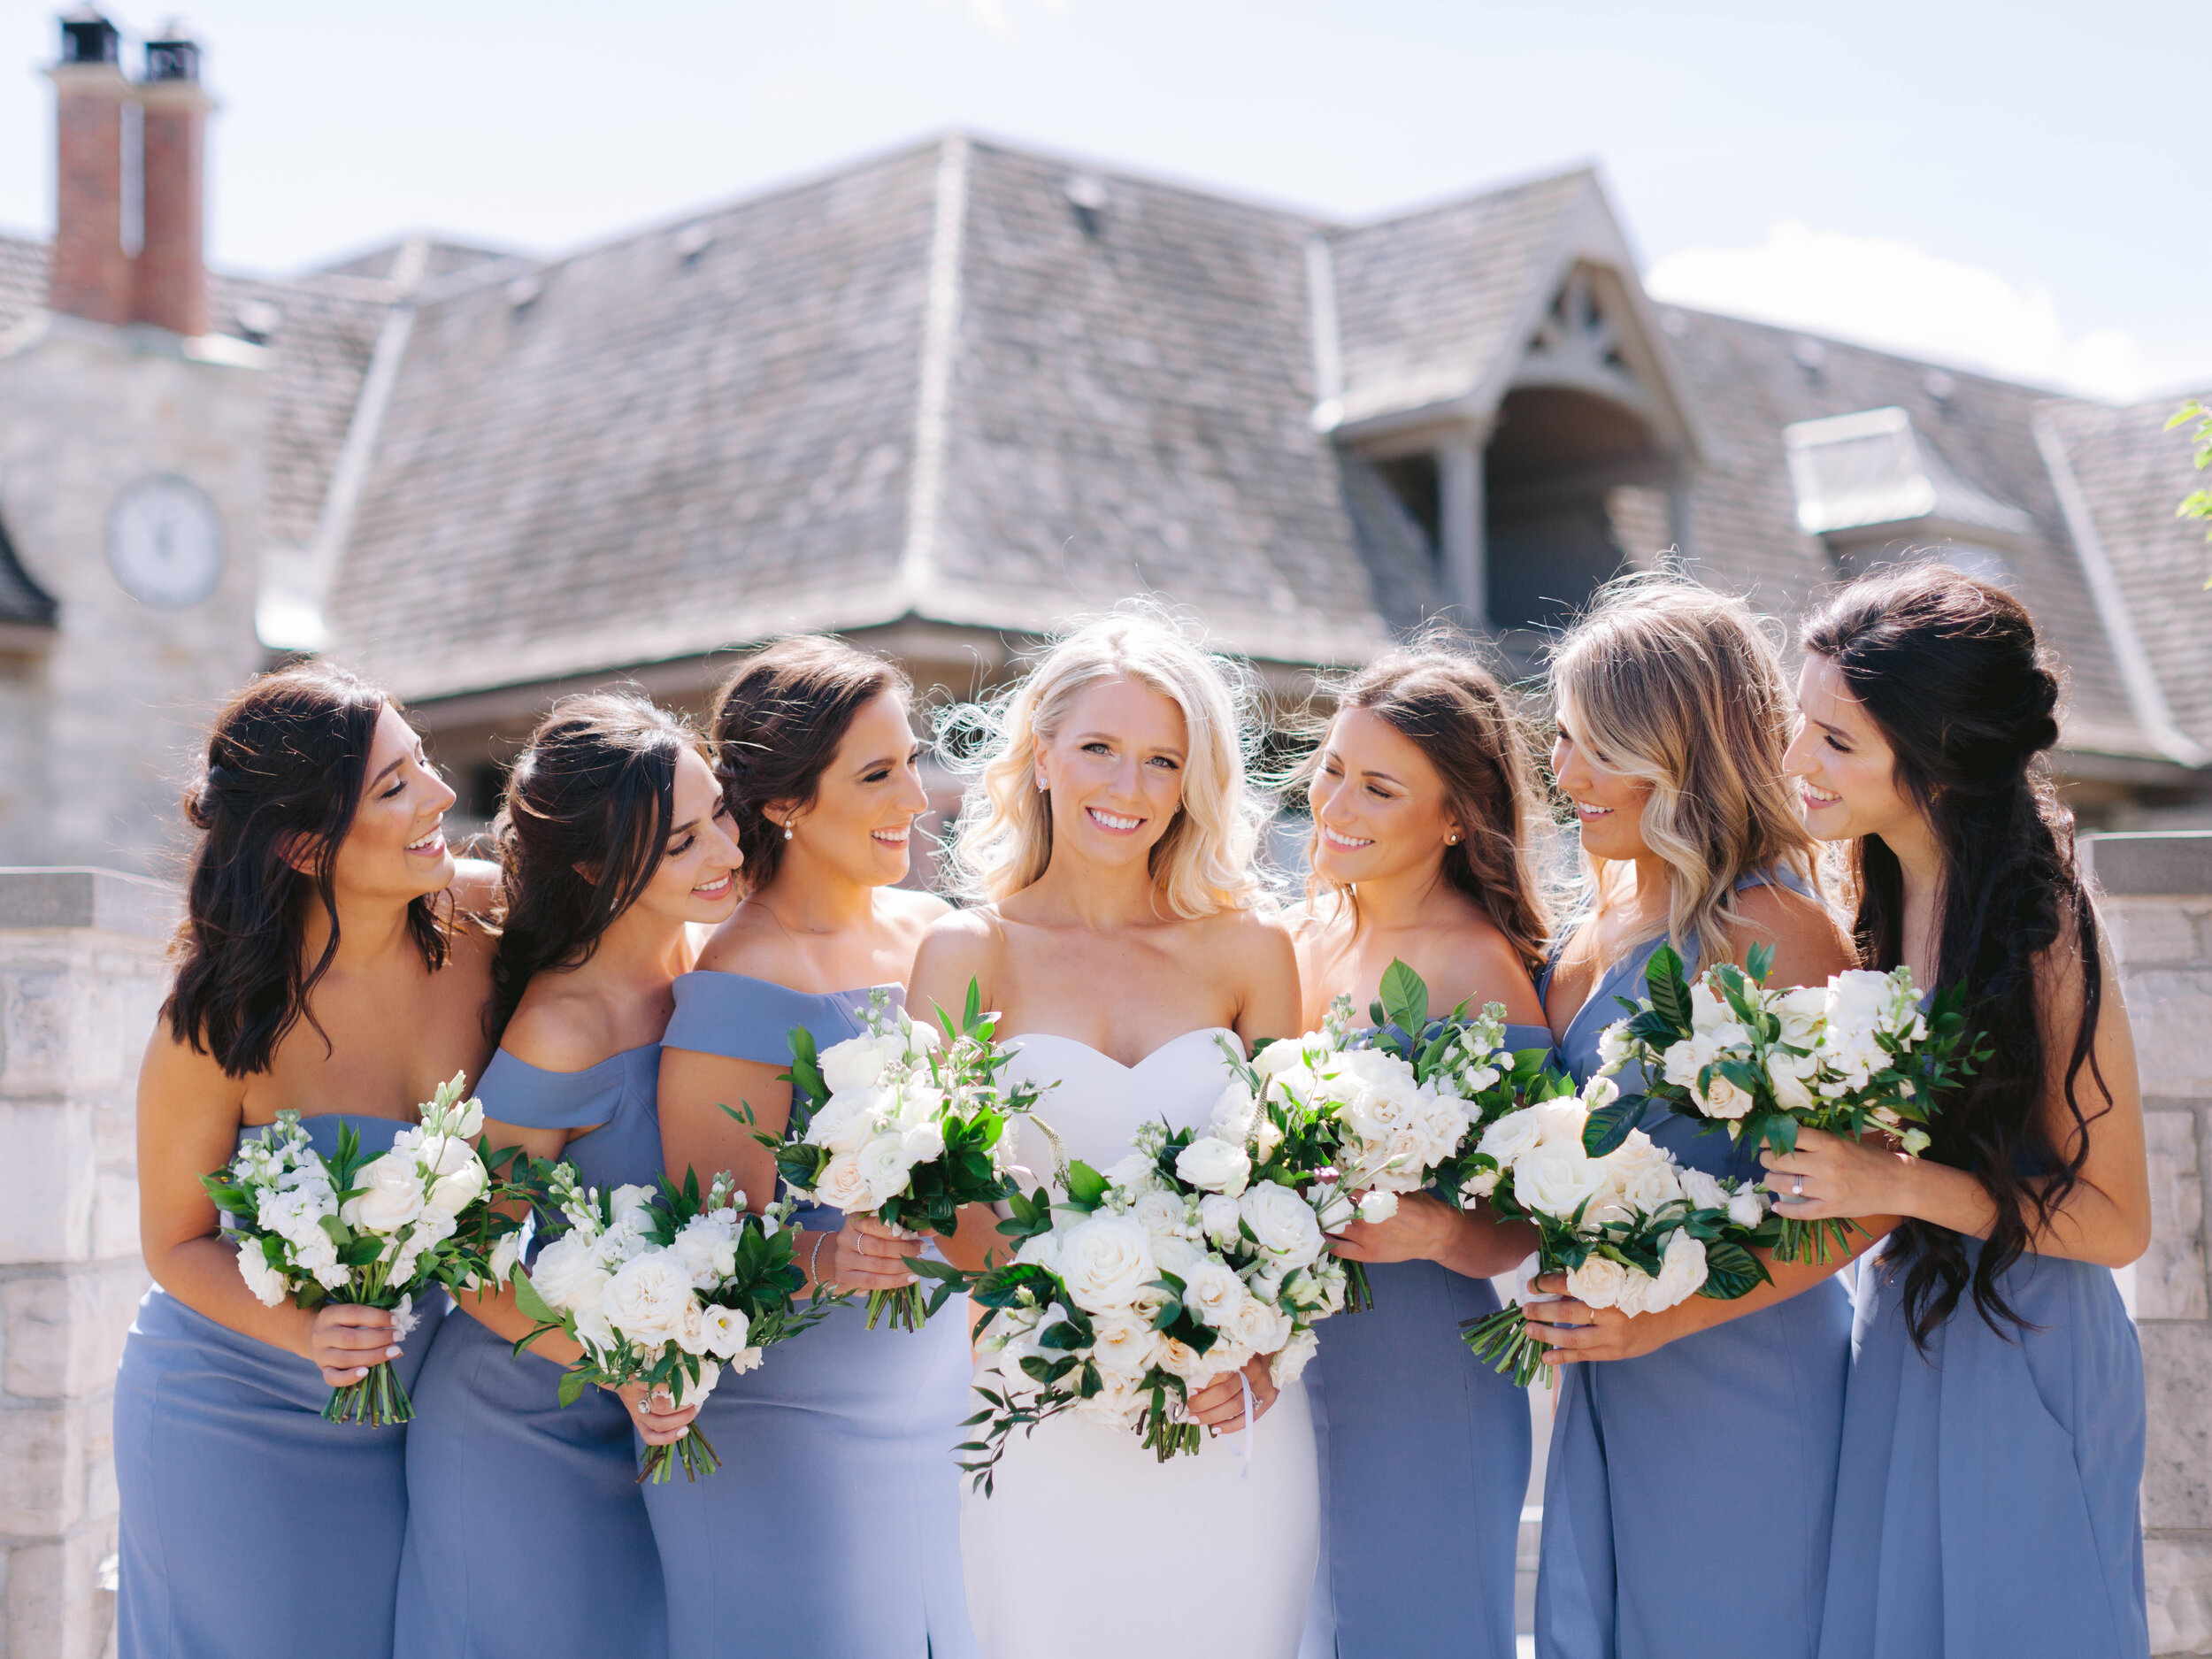 First Look_Bridal Party Portraits (32 of 234).JPG